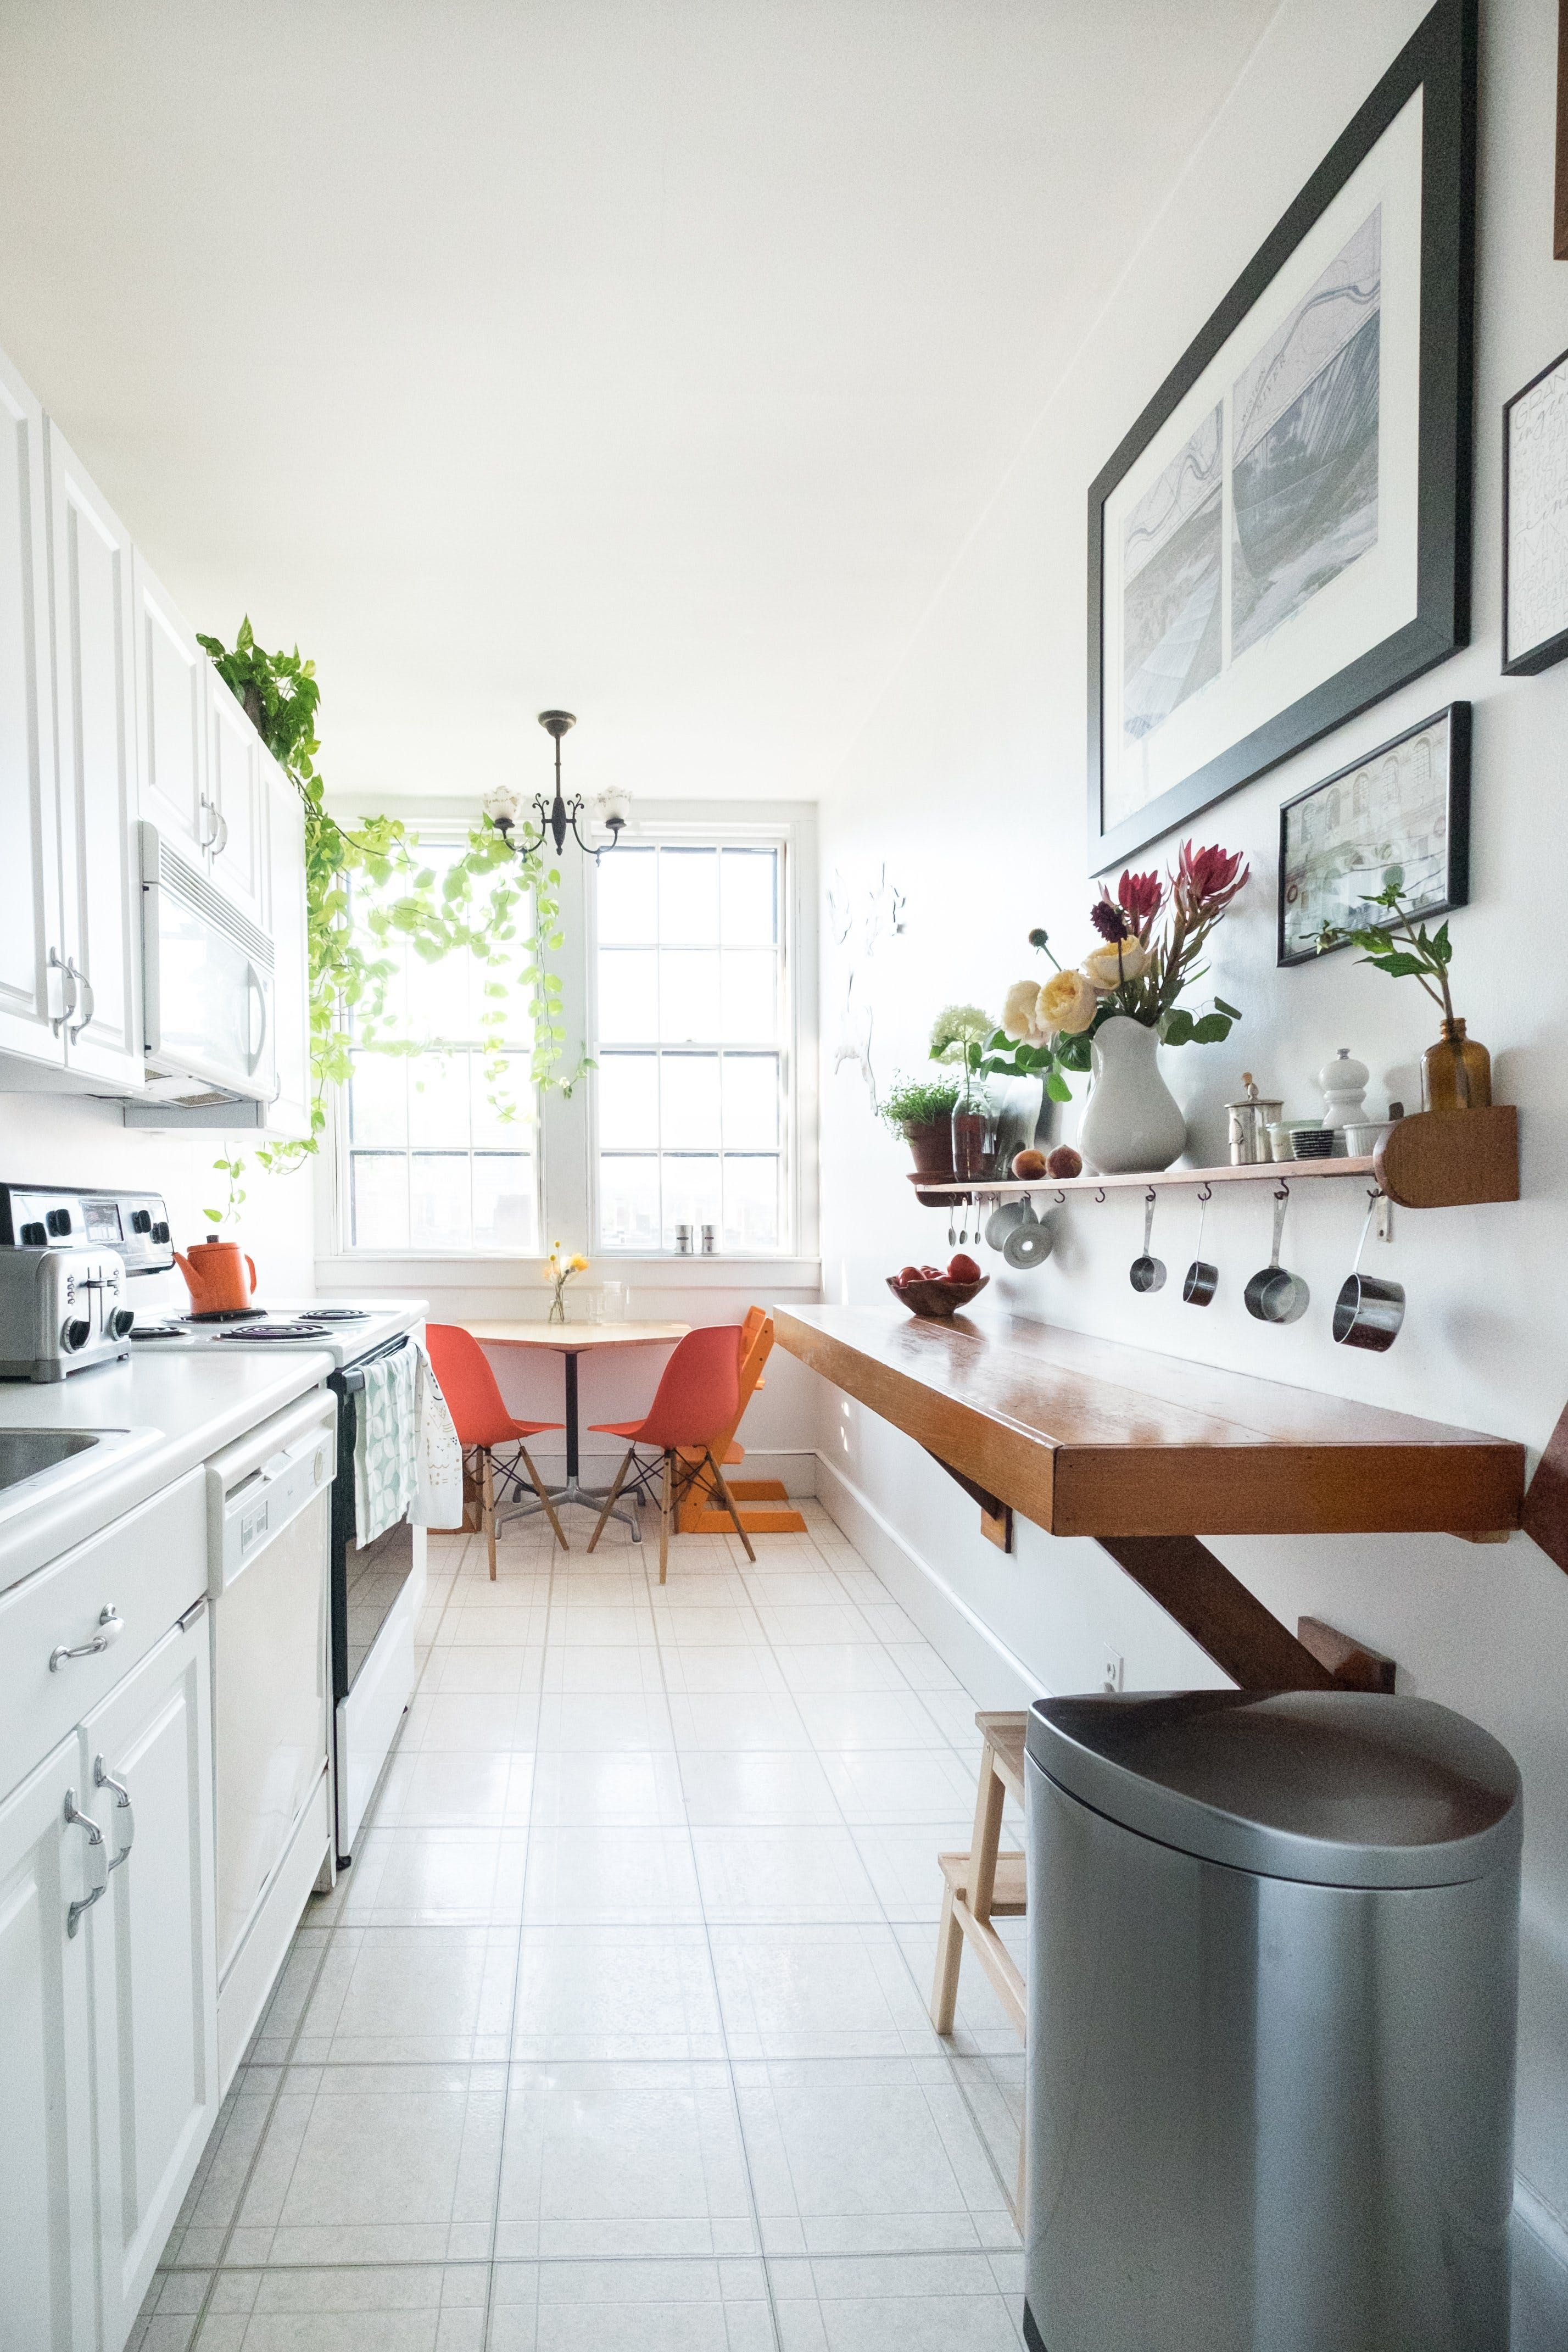 One Simple Shortcut to Cut the Clutter